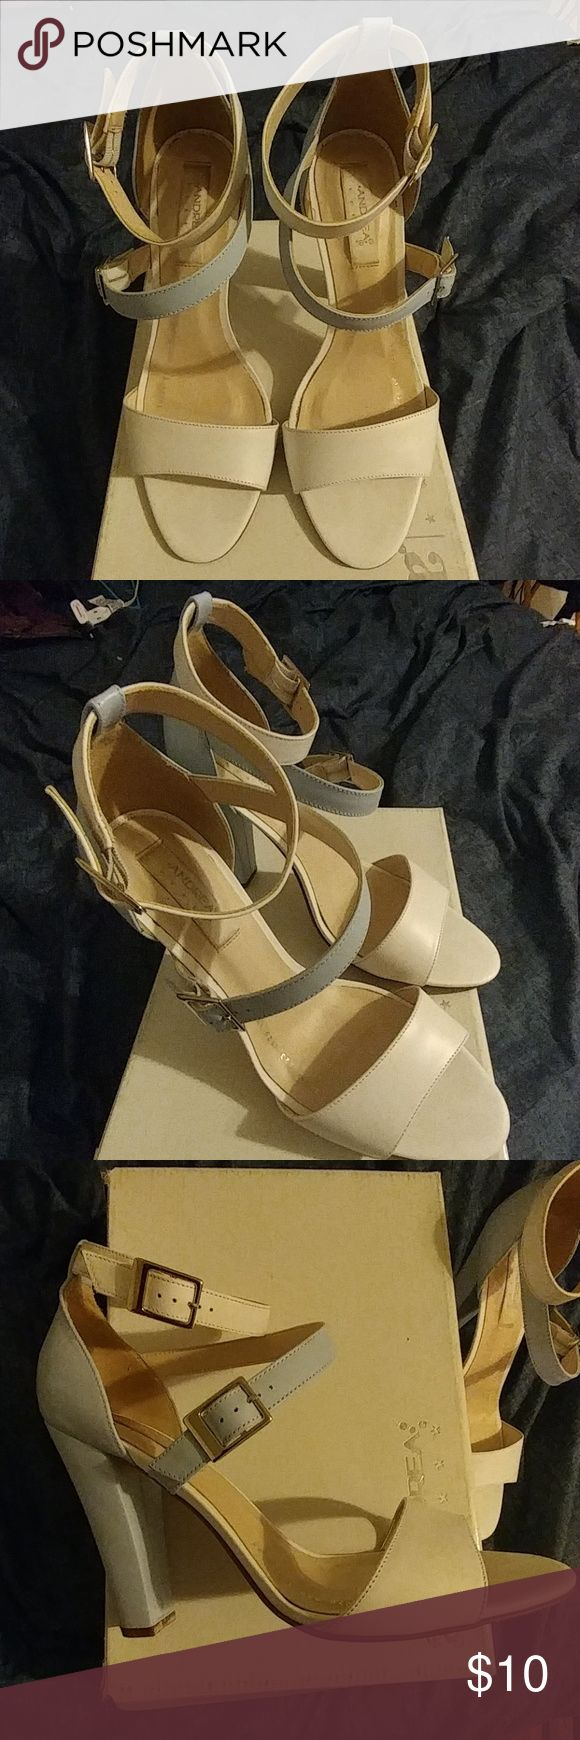 Women's strappy heels Sky blue and white strappy chunky heels, only worn twice. Brand: Andrea Shoes Heels